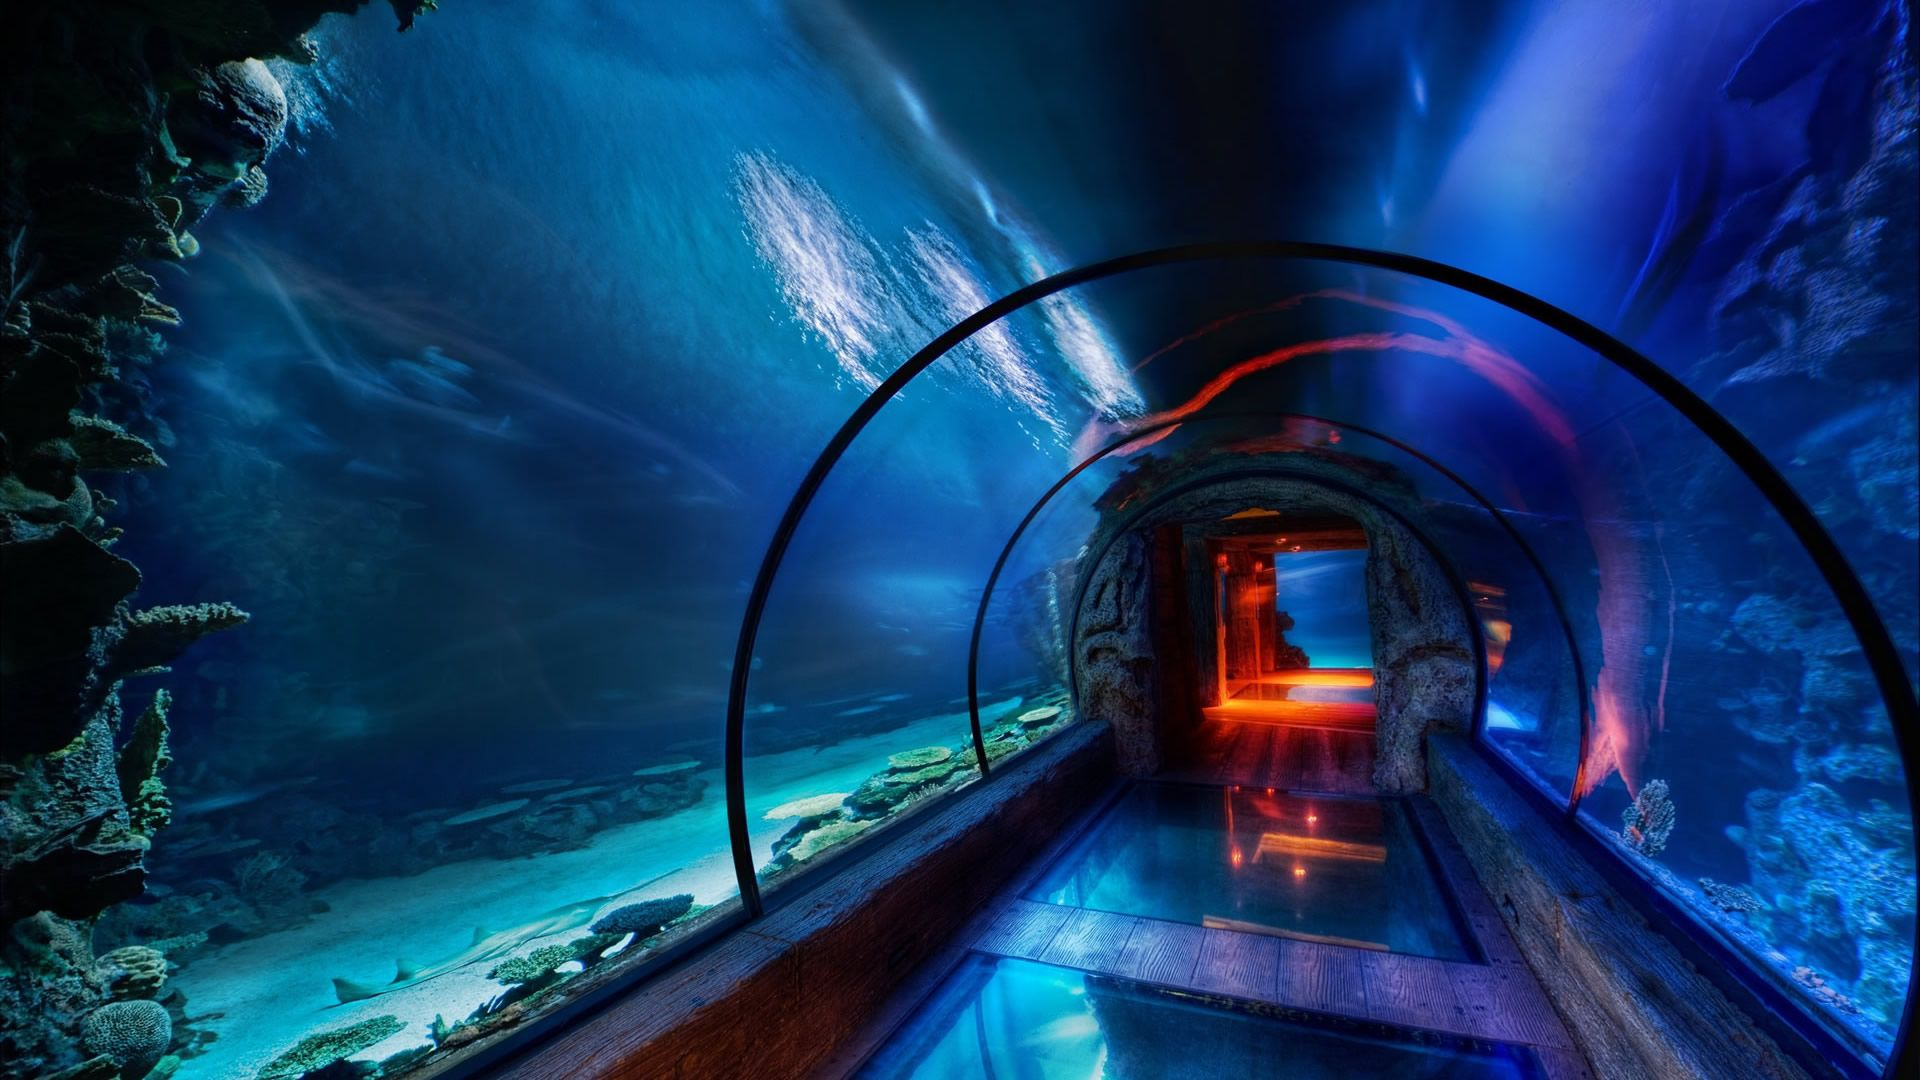 Glass tunnel under the sea images for desktop and wallpaper